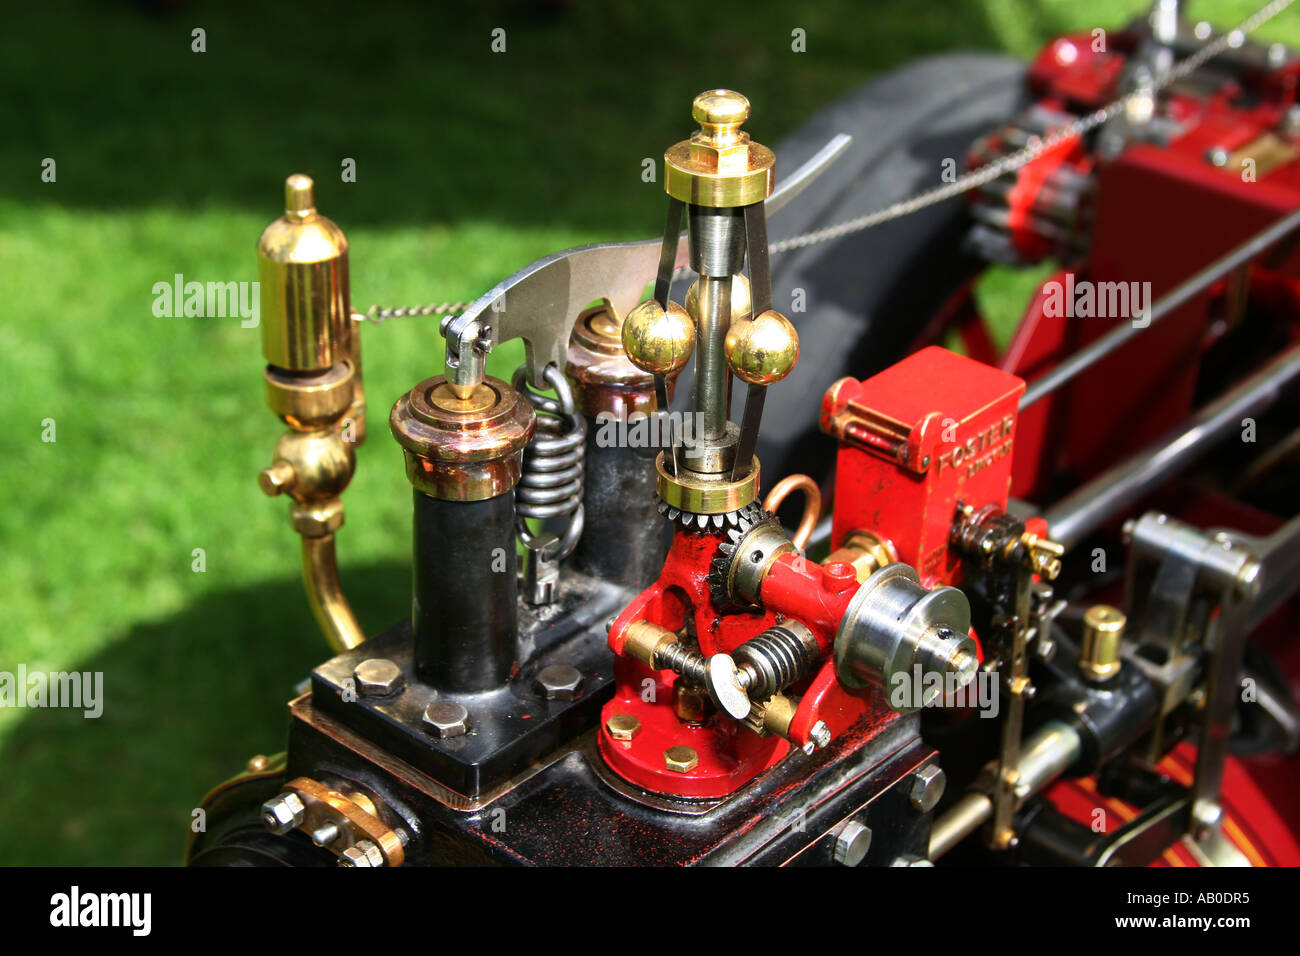 Steam and revolution controller gear on a scale model steam traction engine. - Stock Image